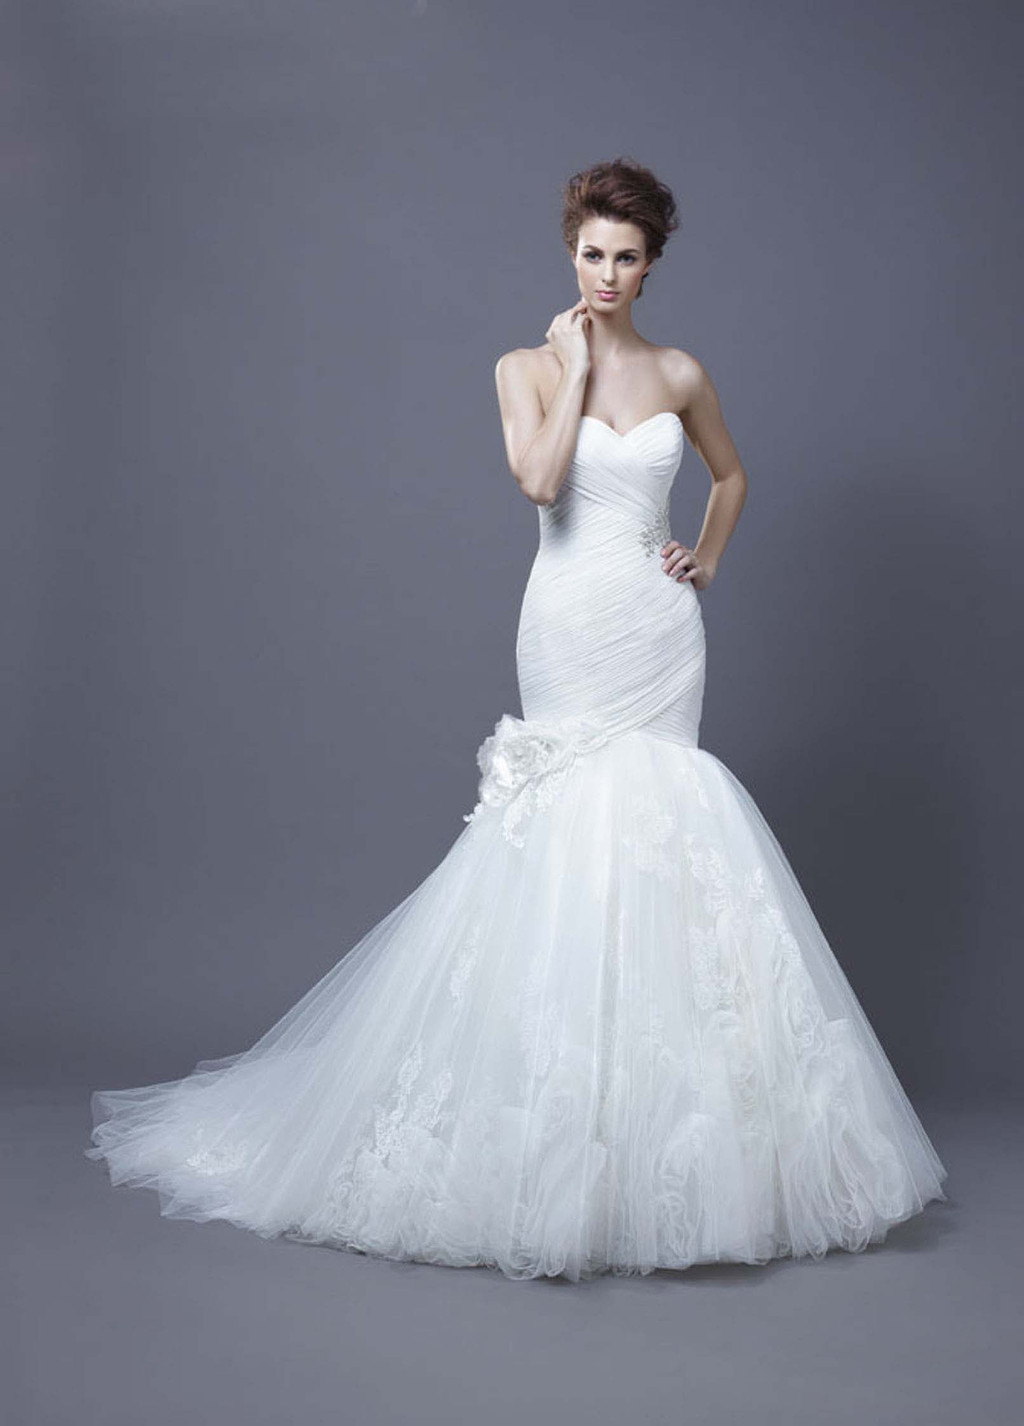 2013 Wedding Dress by Enzoani Bridal Harika